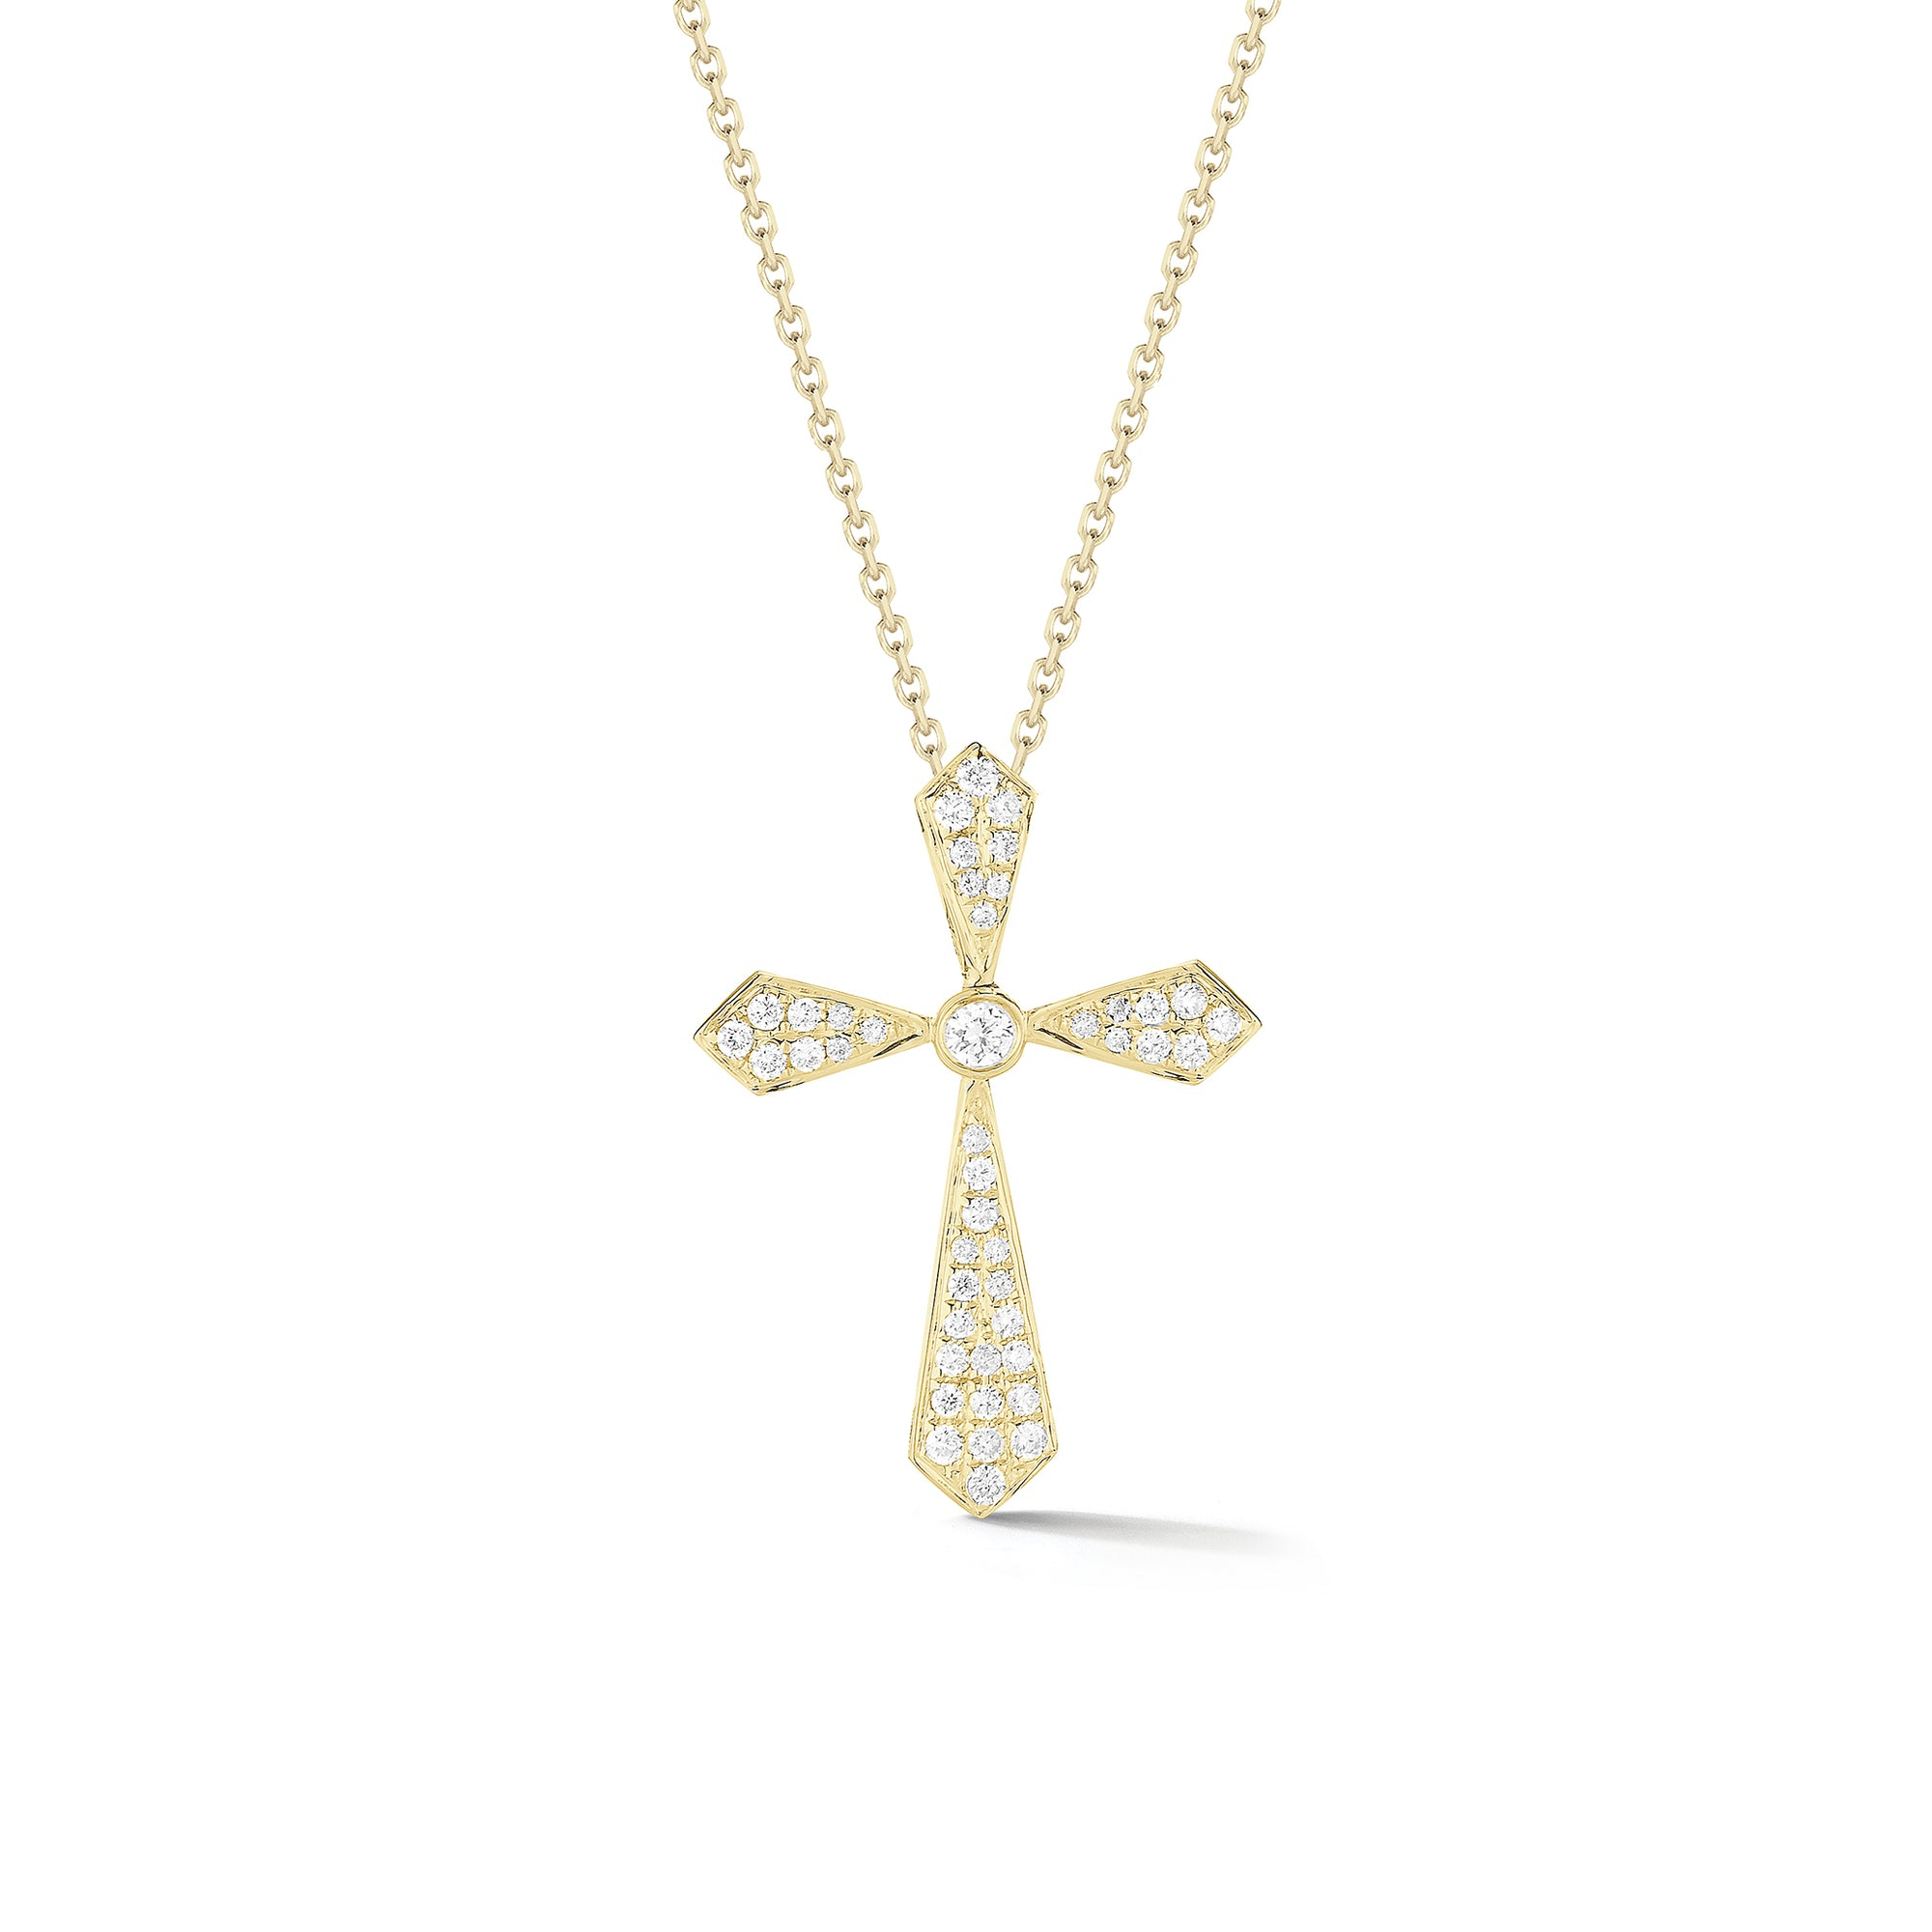 Pave Diamond Cross Pendant Necklace